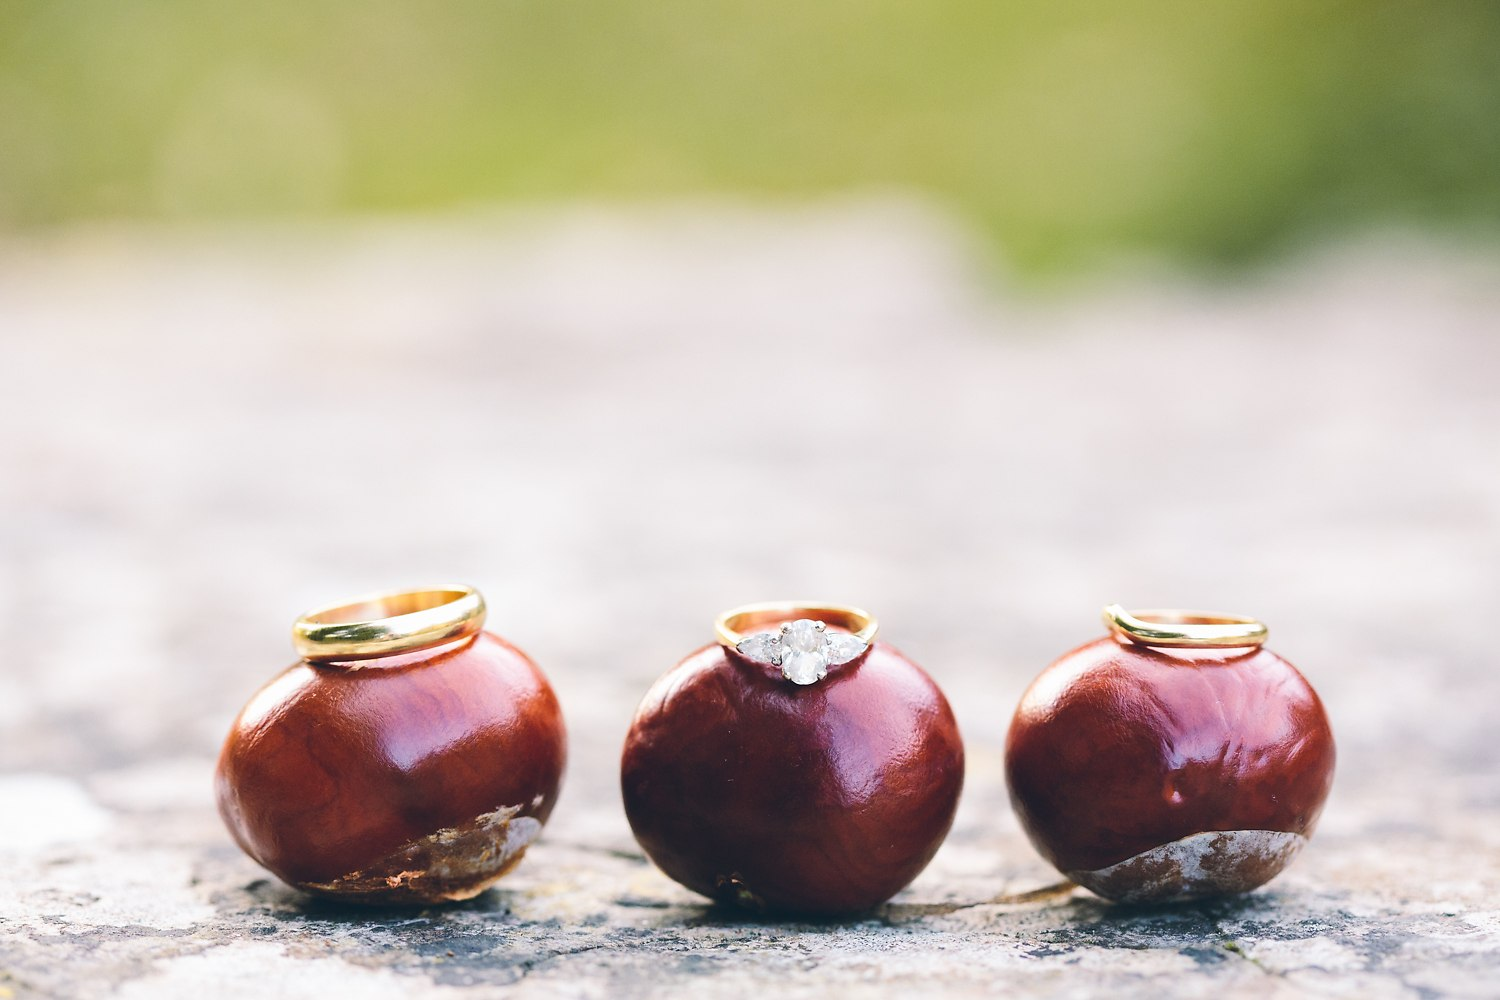 fun wedding photo of wedding rings on conkers